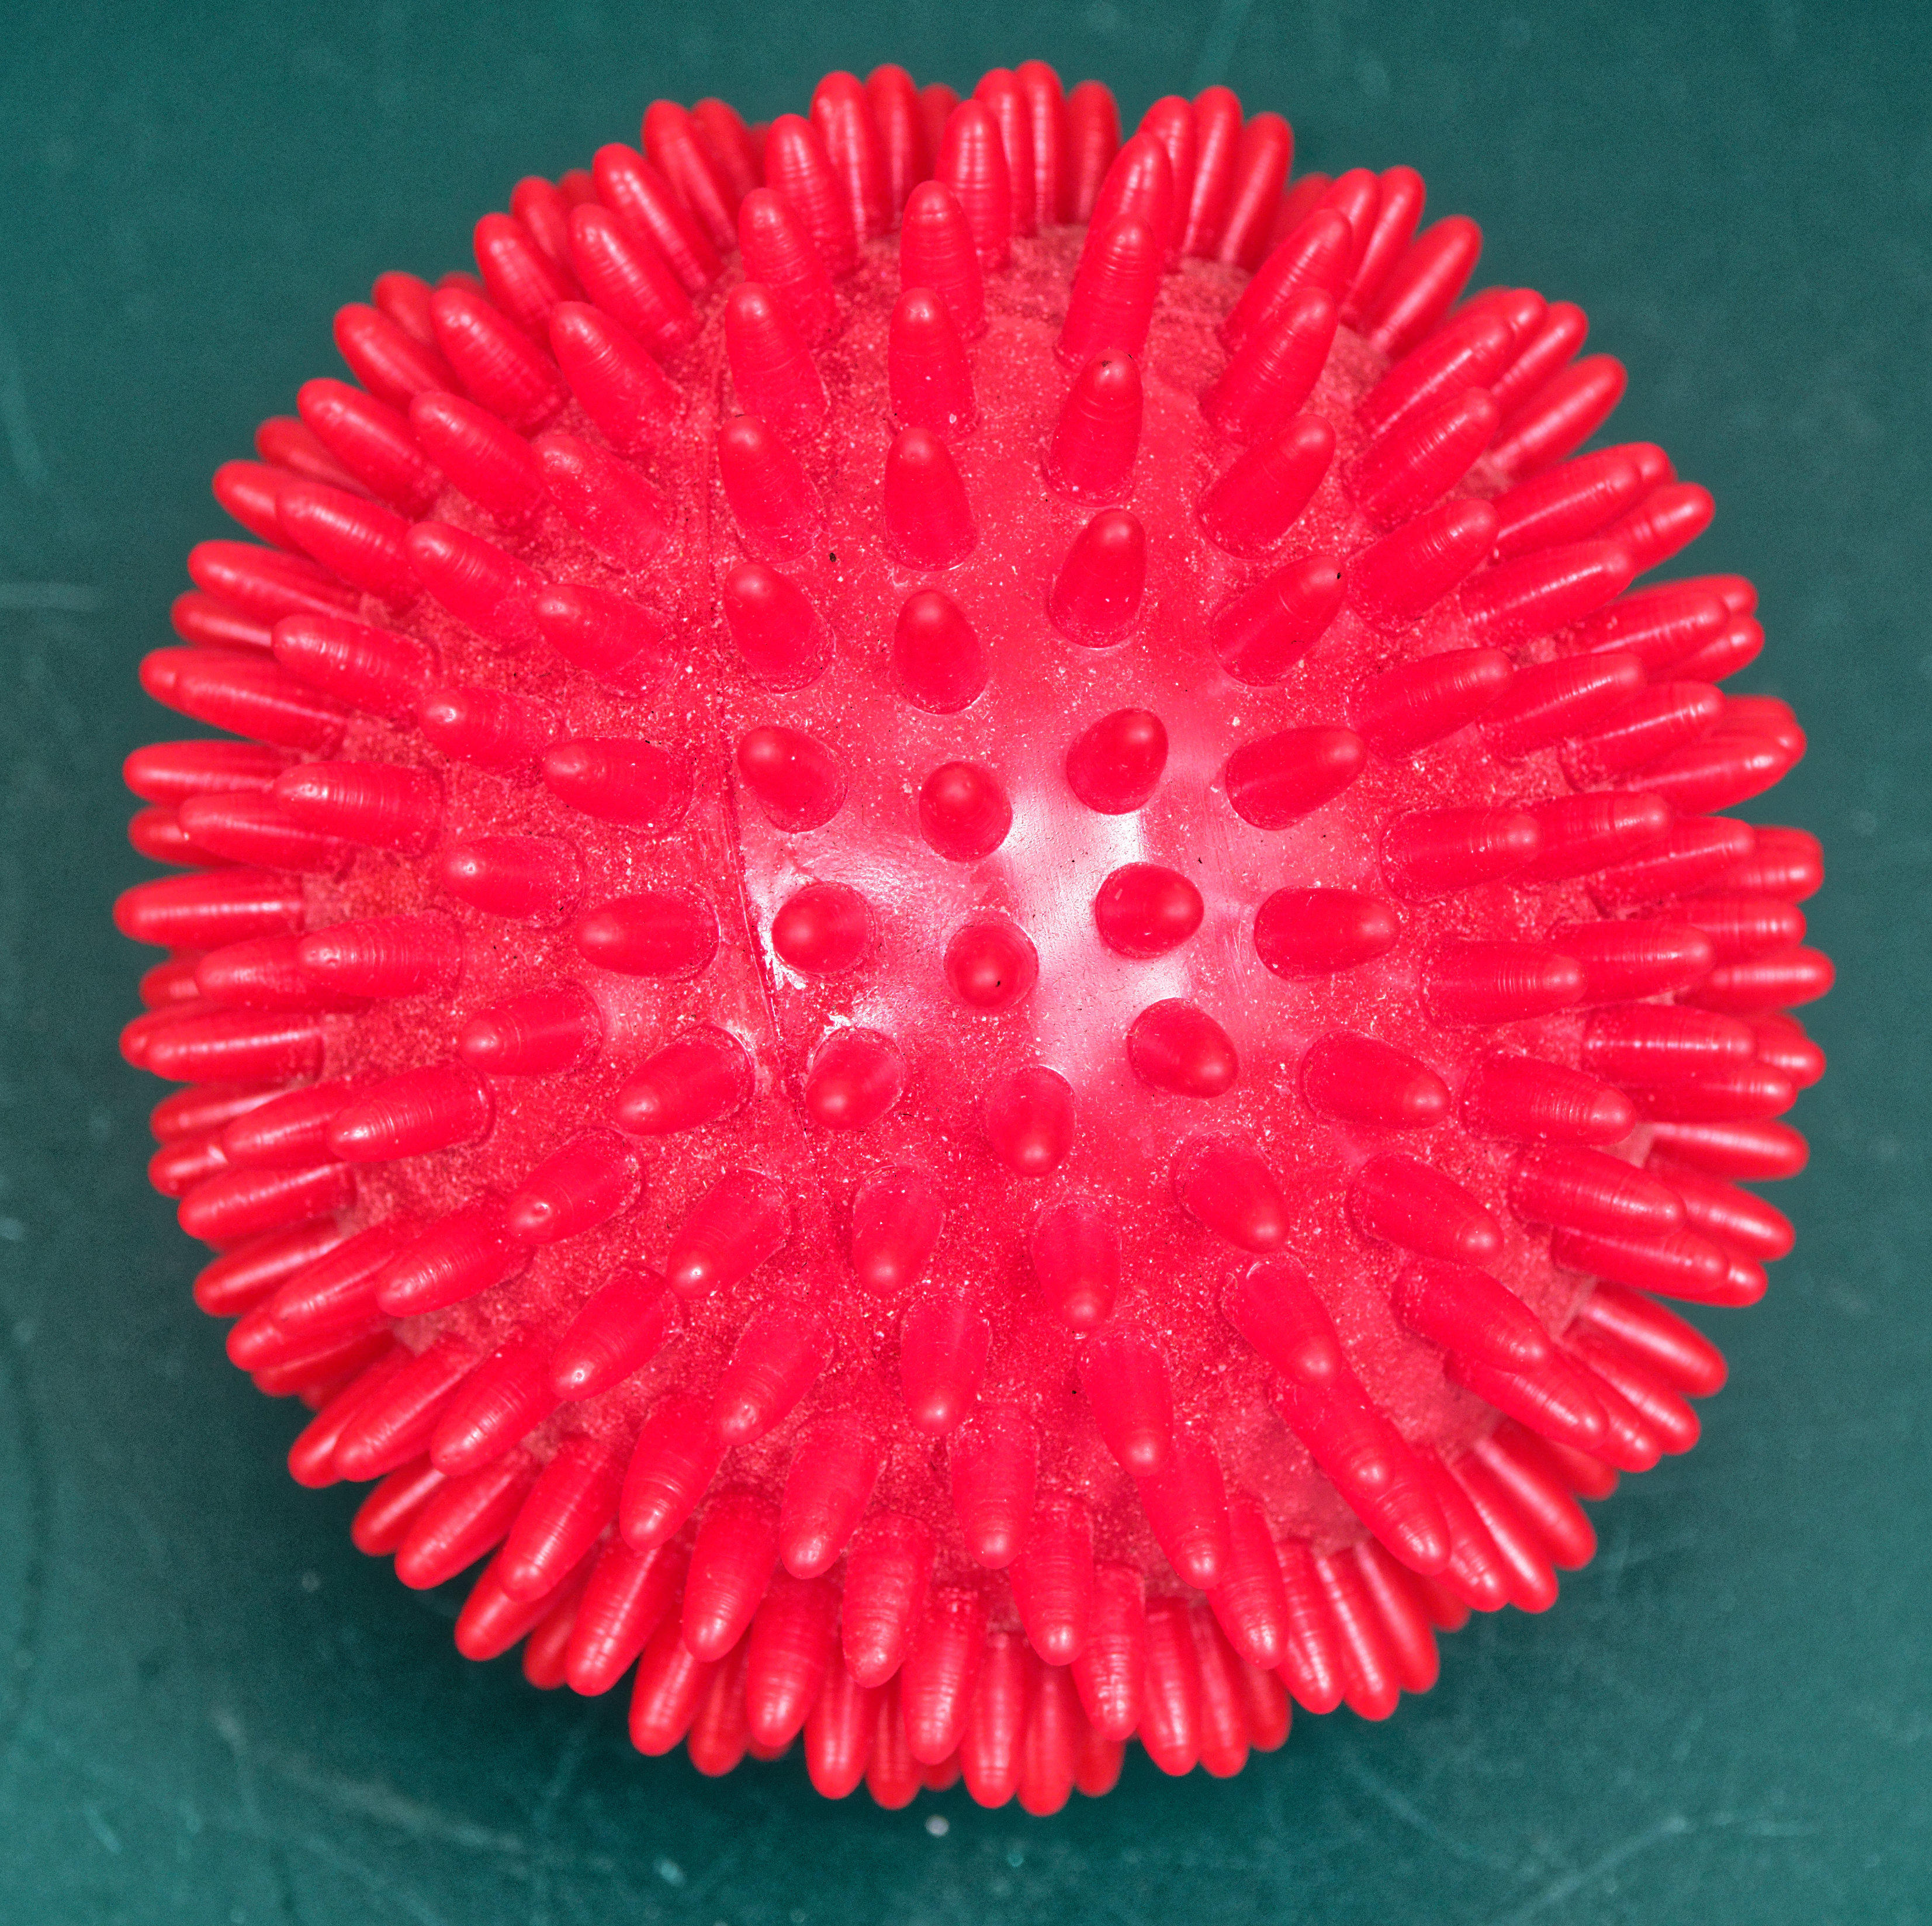 This should be Blowfish-ball.jpeg.  Is it missing?